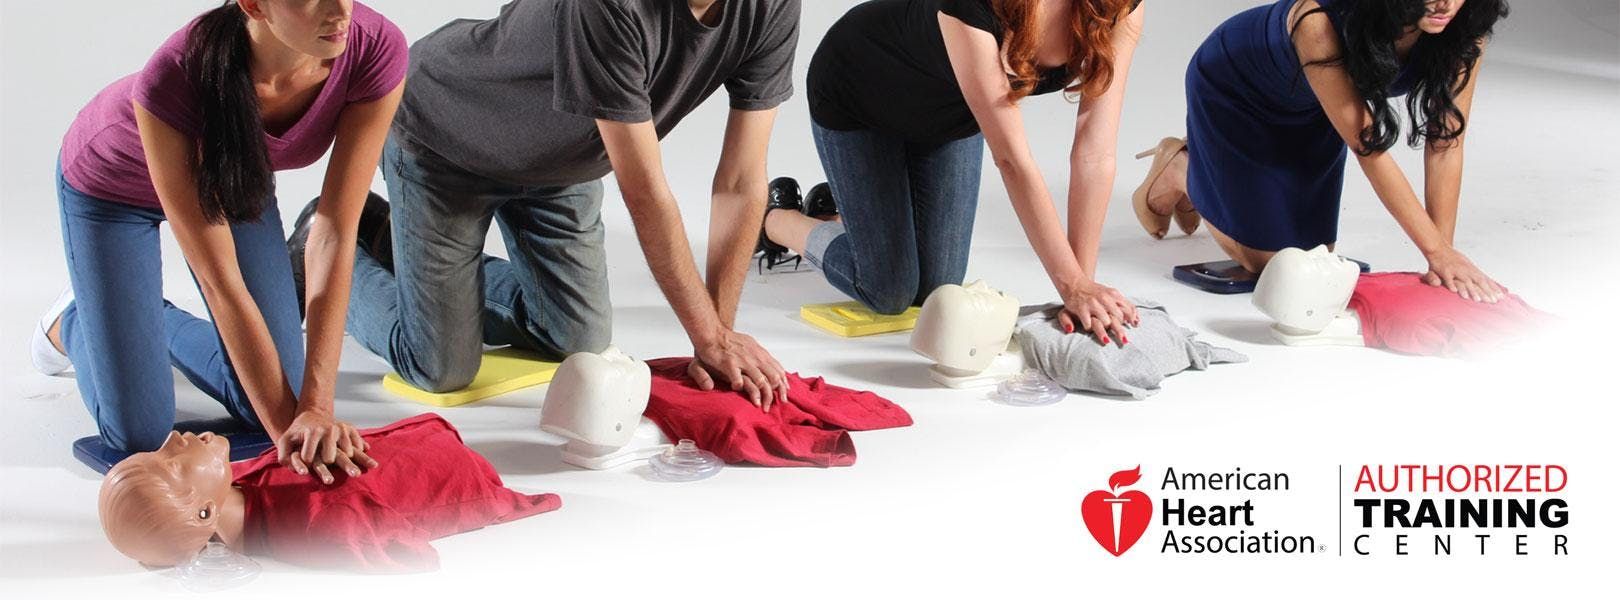 American Heart Association Cprfirst Aid Training Adult Infant